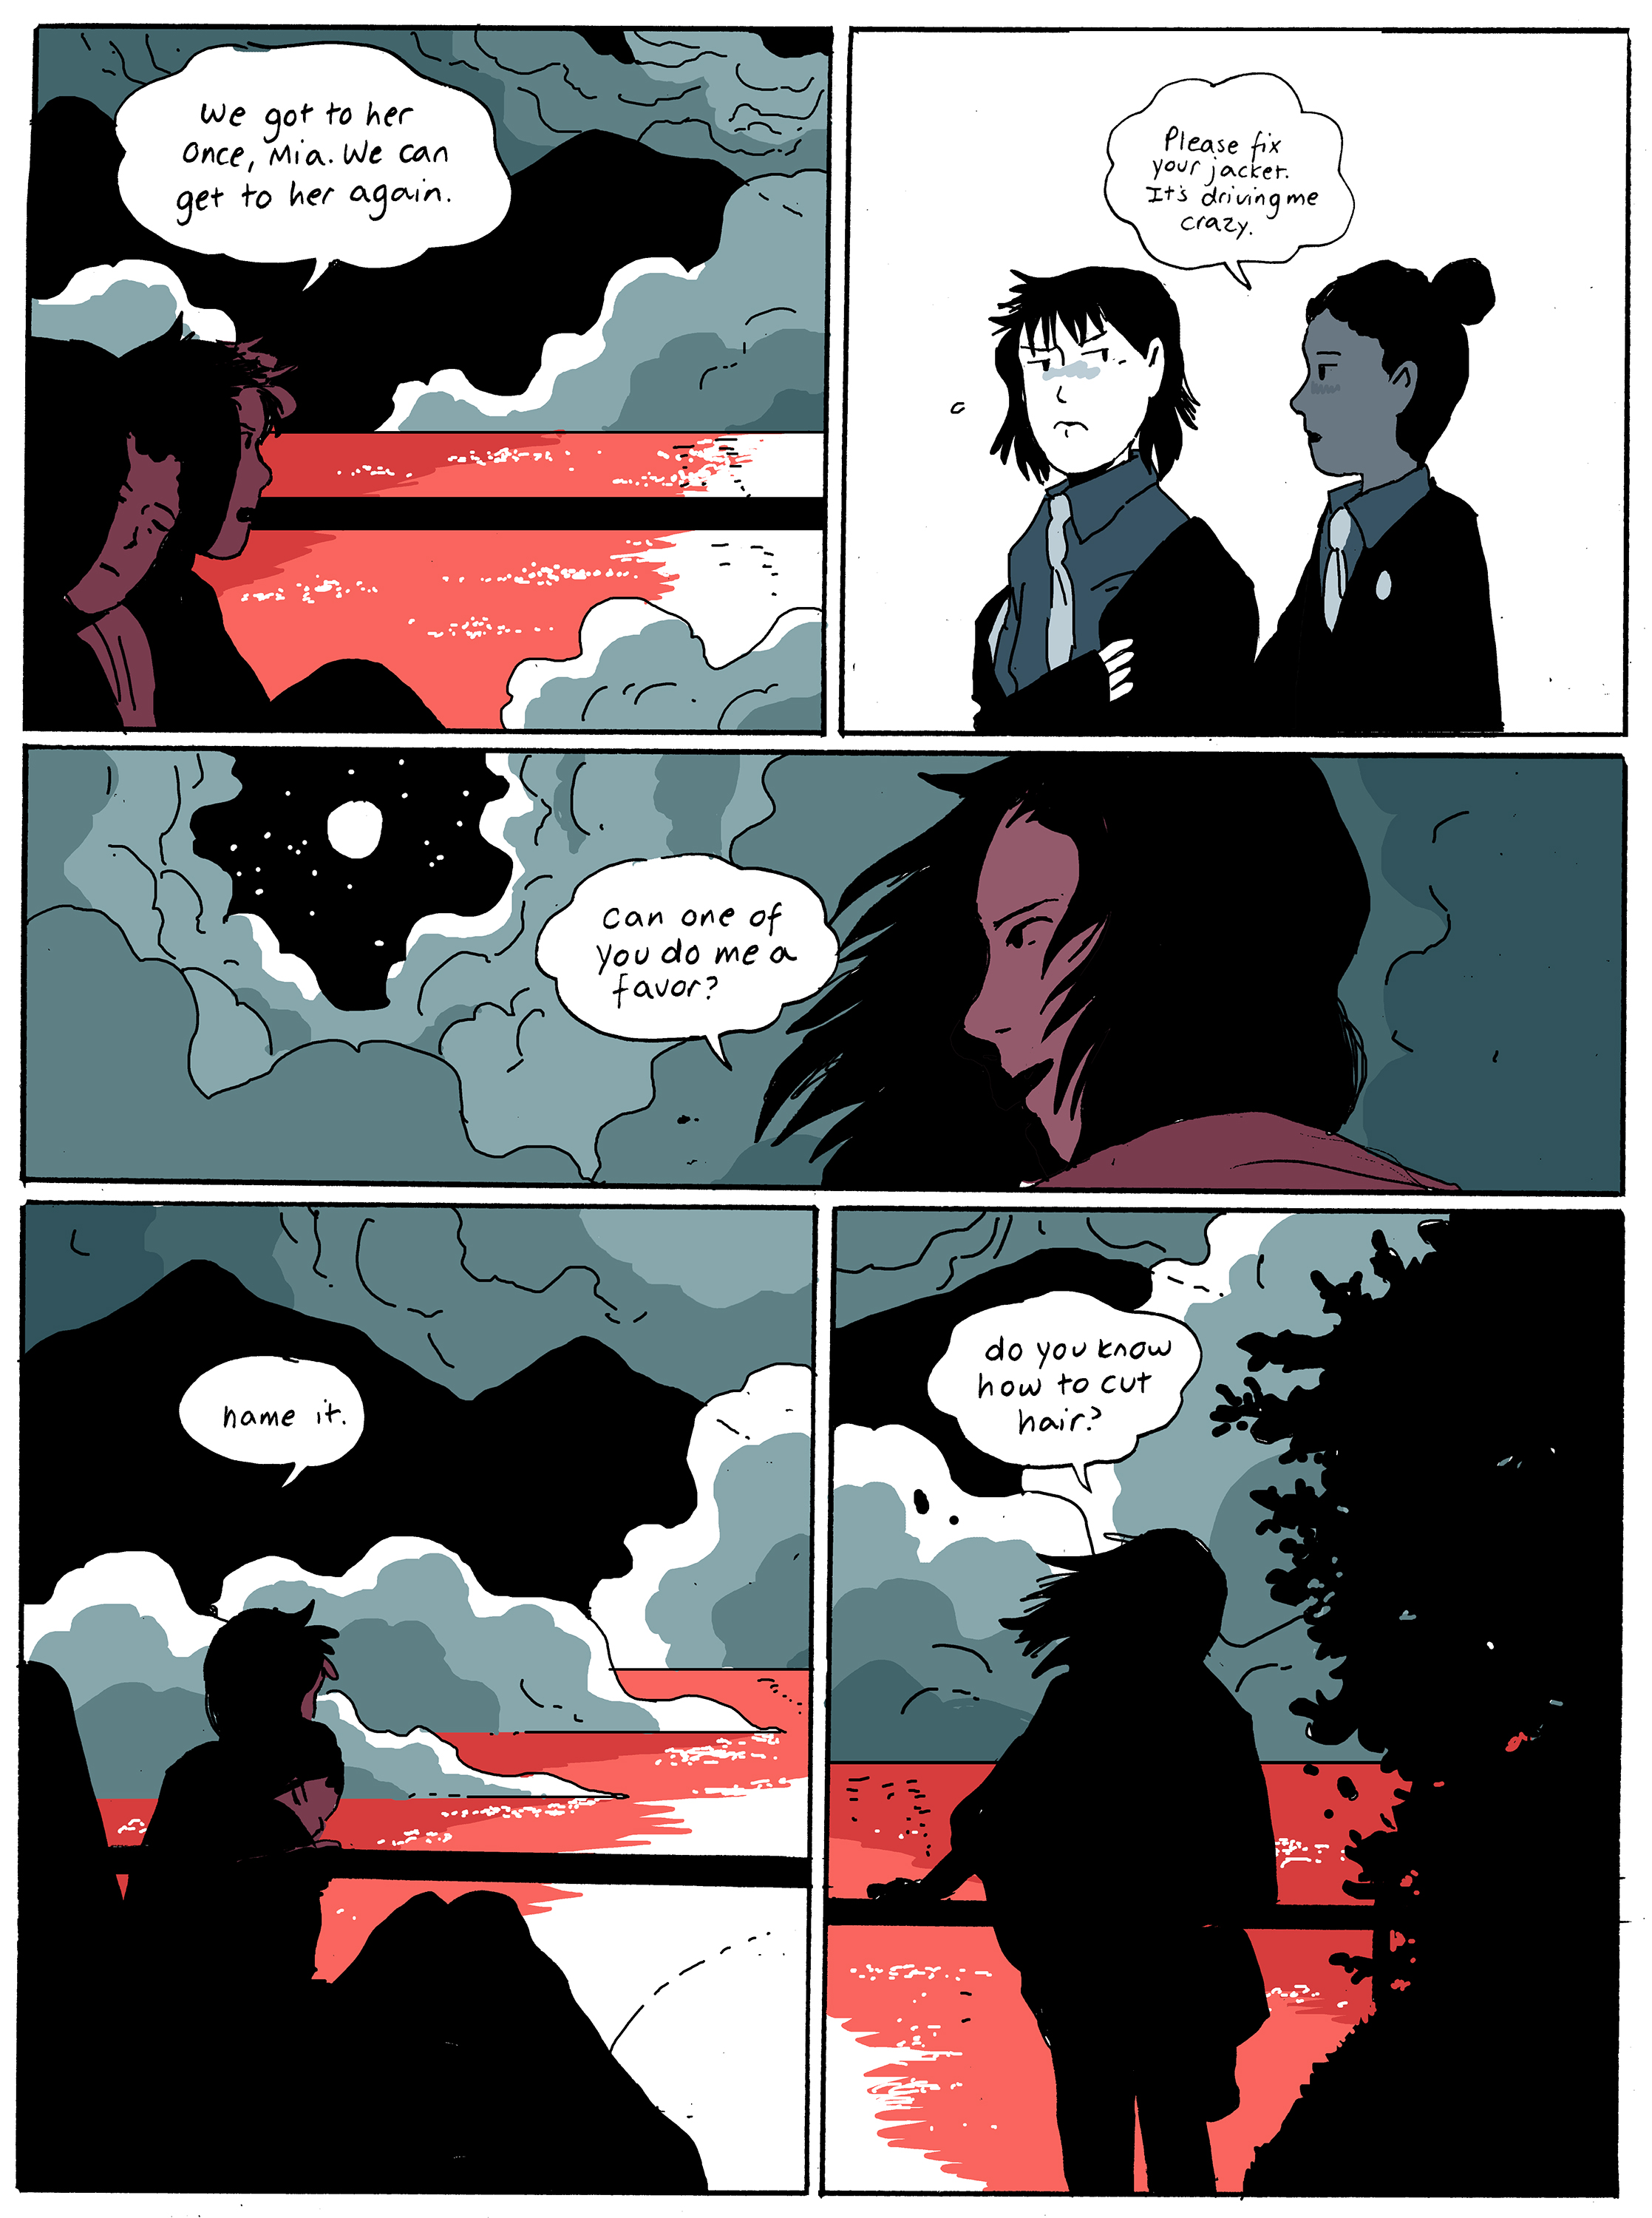 chapter14_page24.jpg